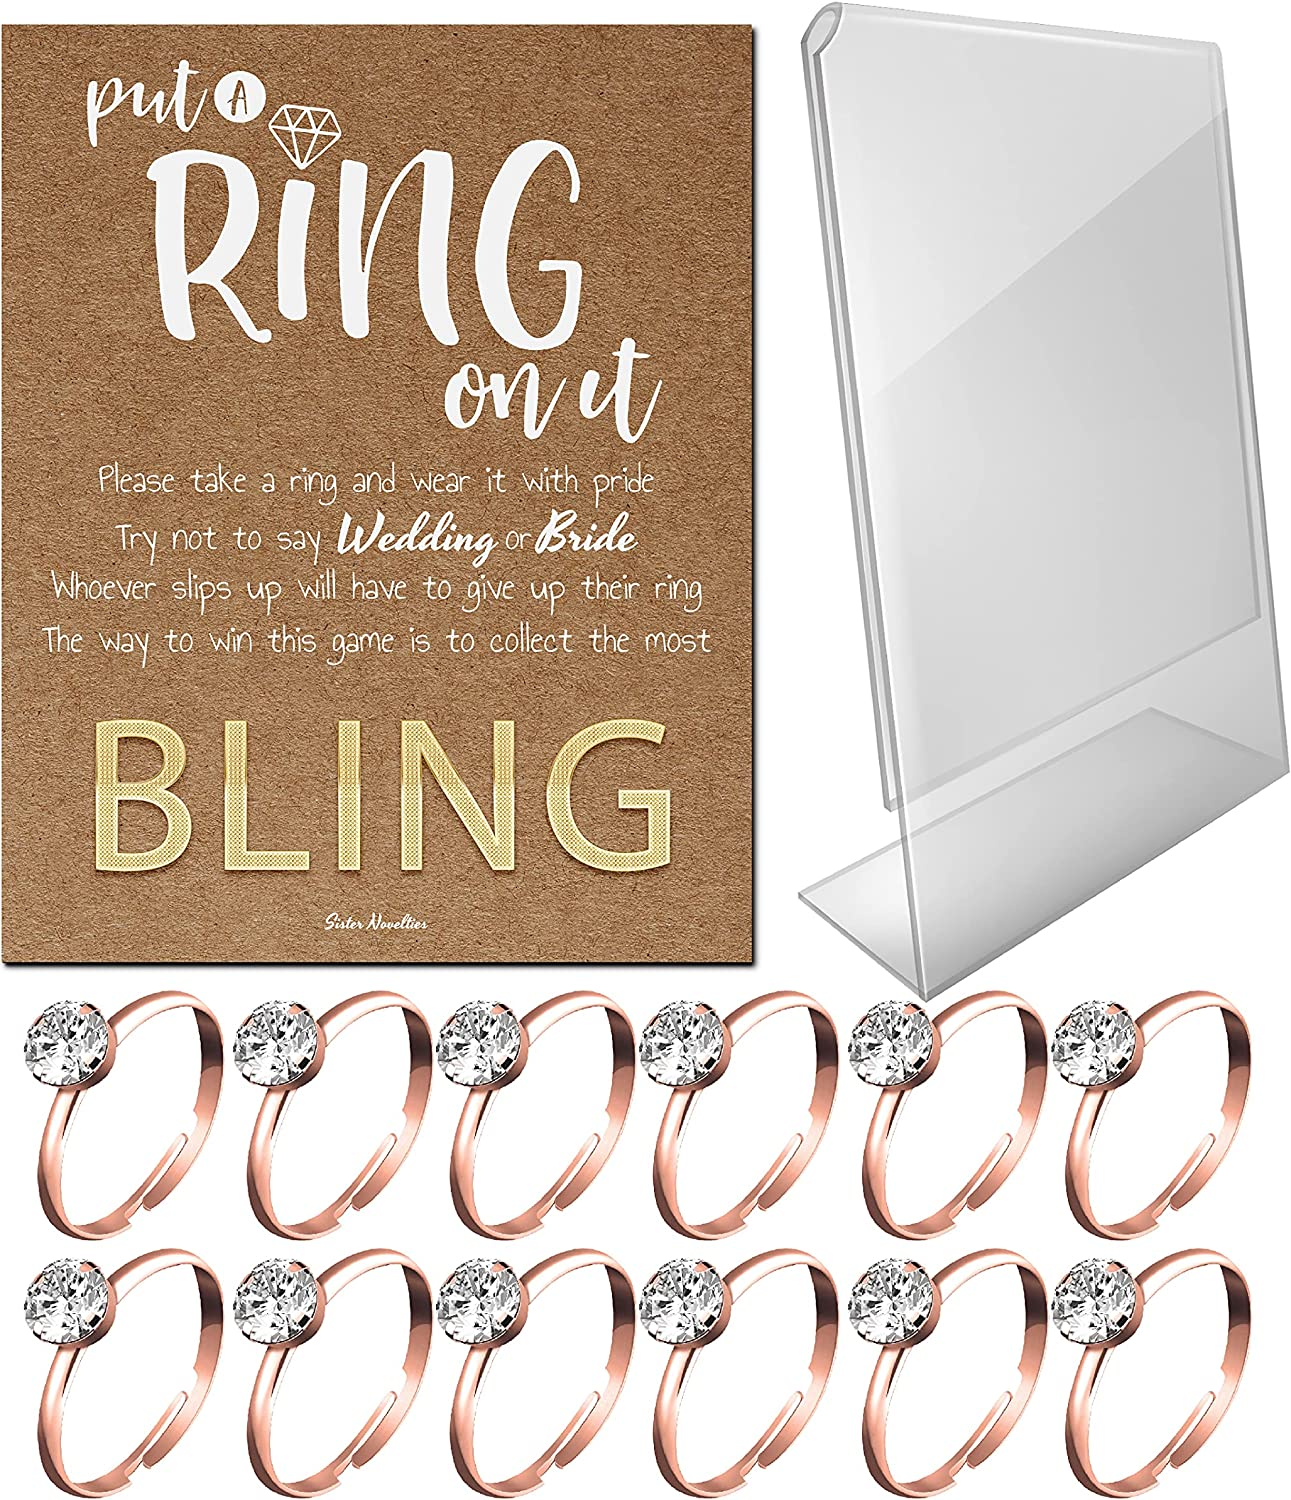 Bridal Shower Games - Put a Ring on It Bridal Shower Game with Fake Rings, Bridal Shower Decor, Bridal Shower Decorations, Bridal Shower Games for Guests (Craft - Rose Gold 12 Count)